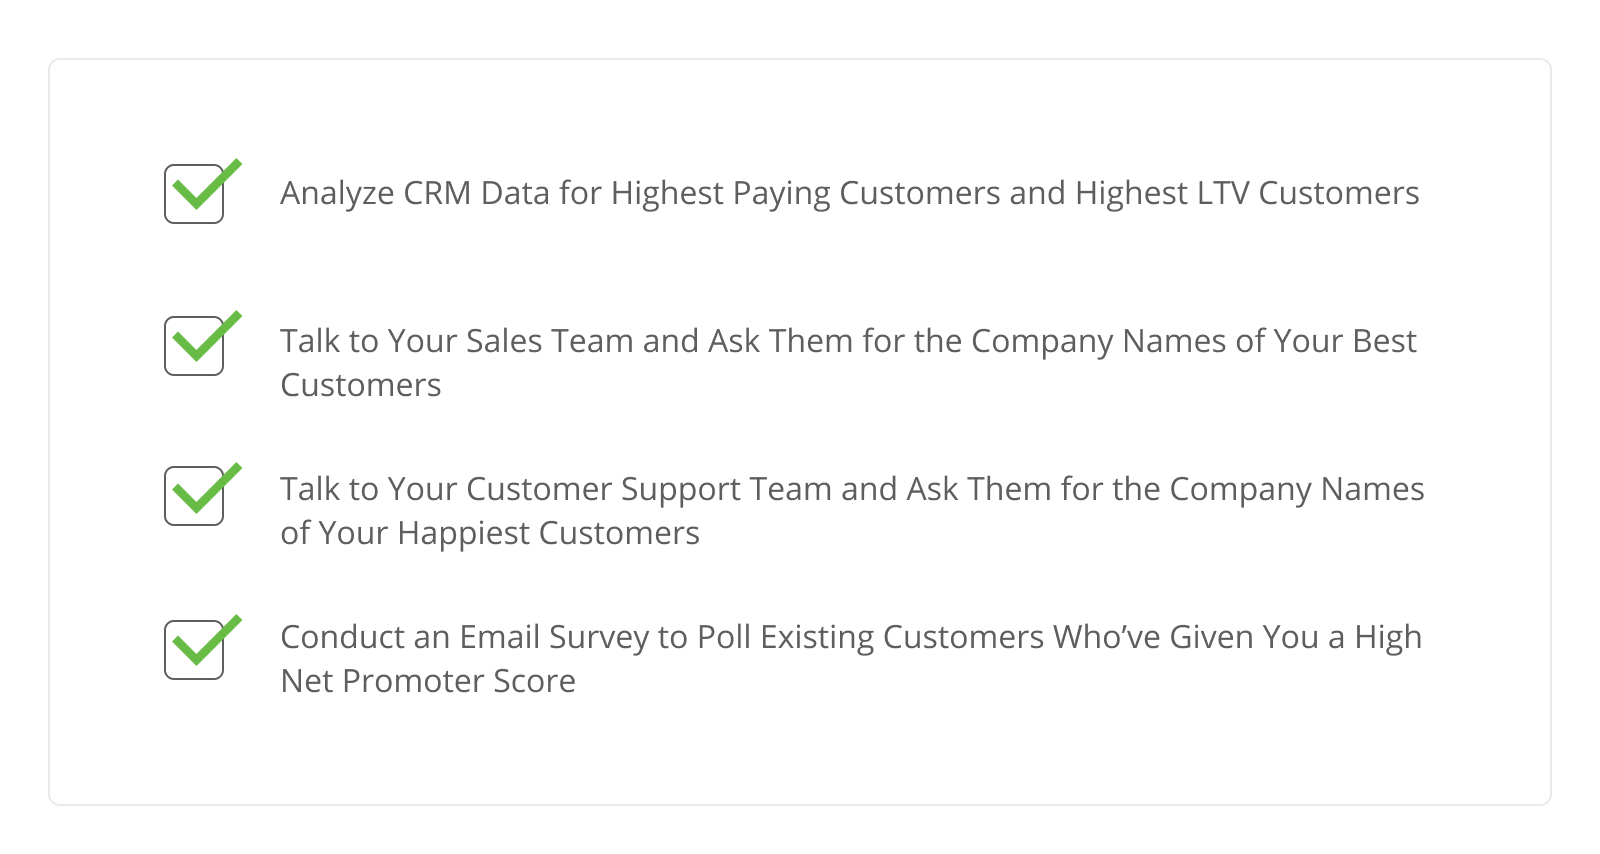 Checklist to identify your best SaaS customers